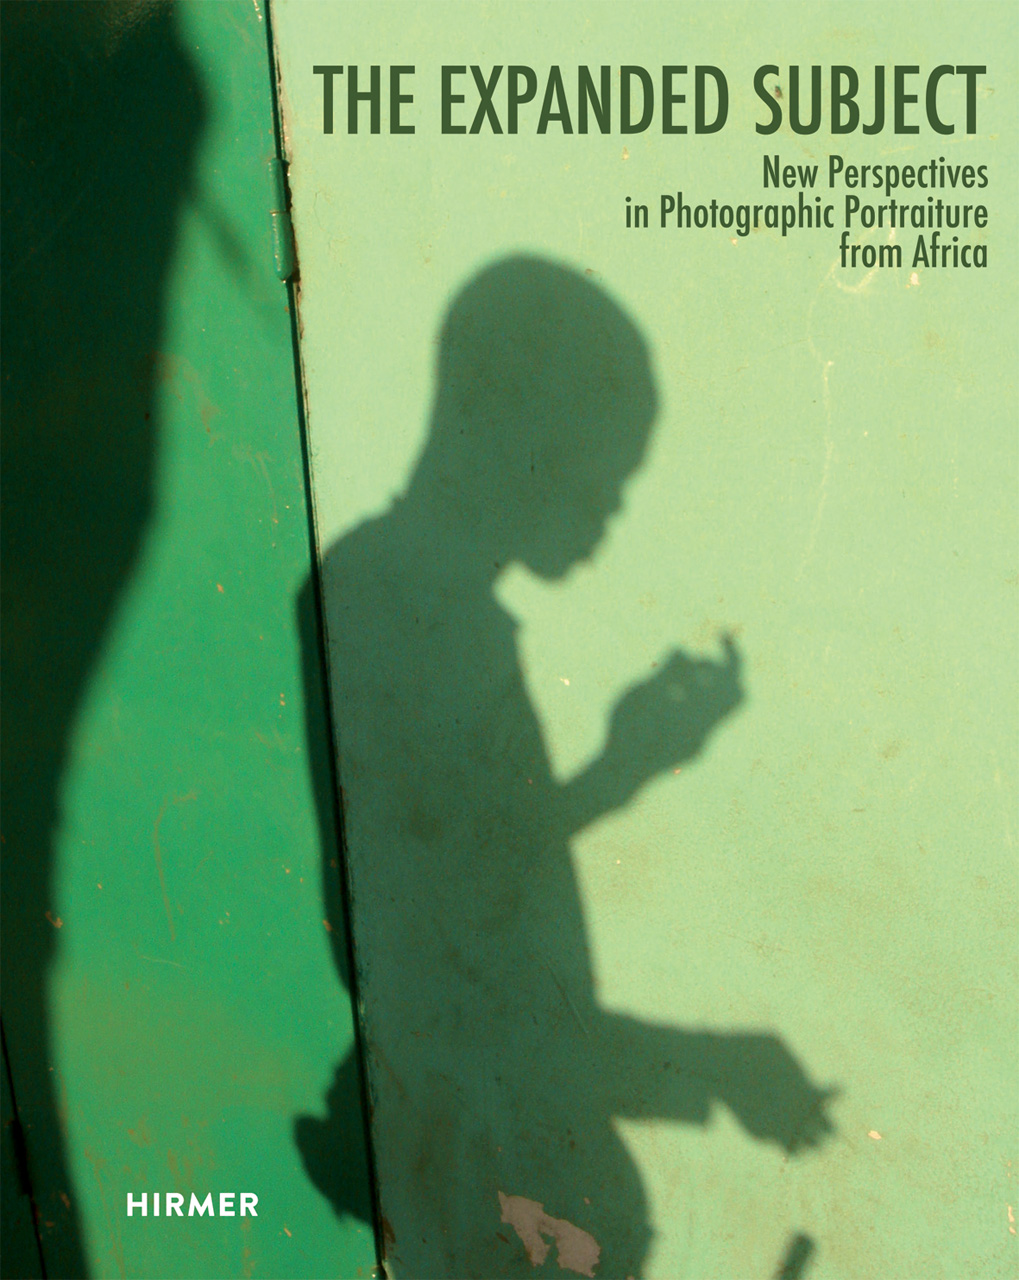 The Expanded Subject: New Perspectives in Photographic Portraiture from Africa